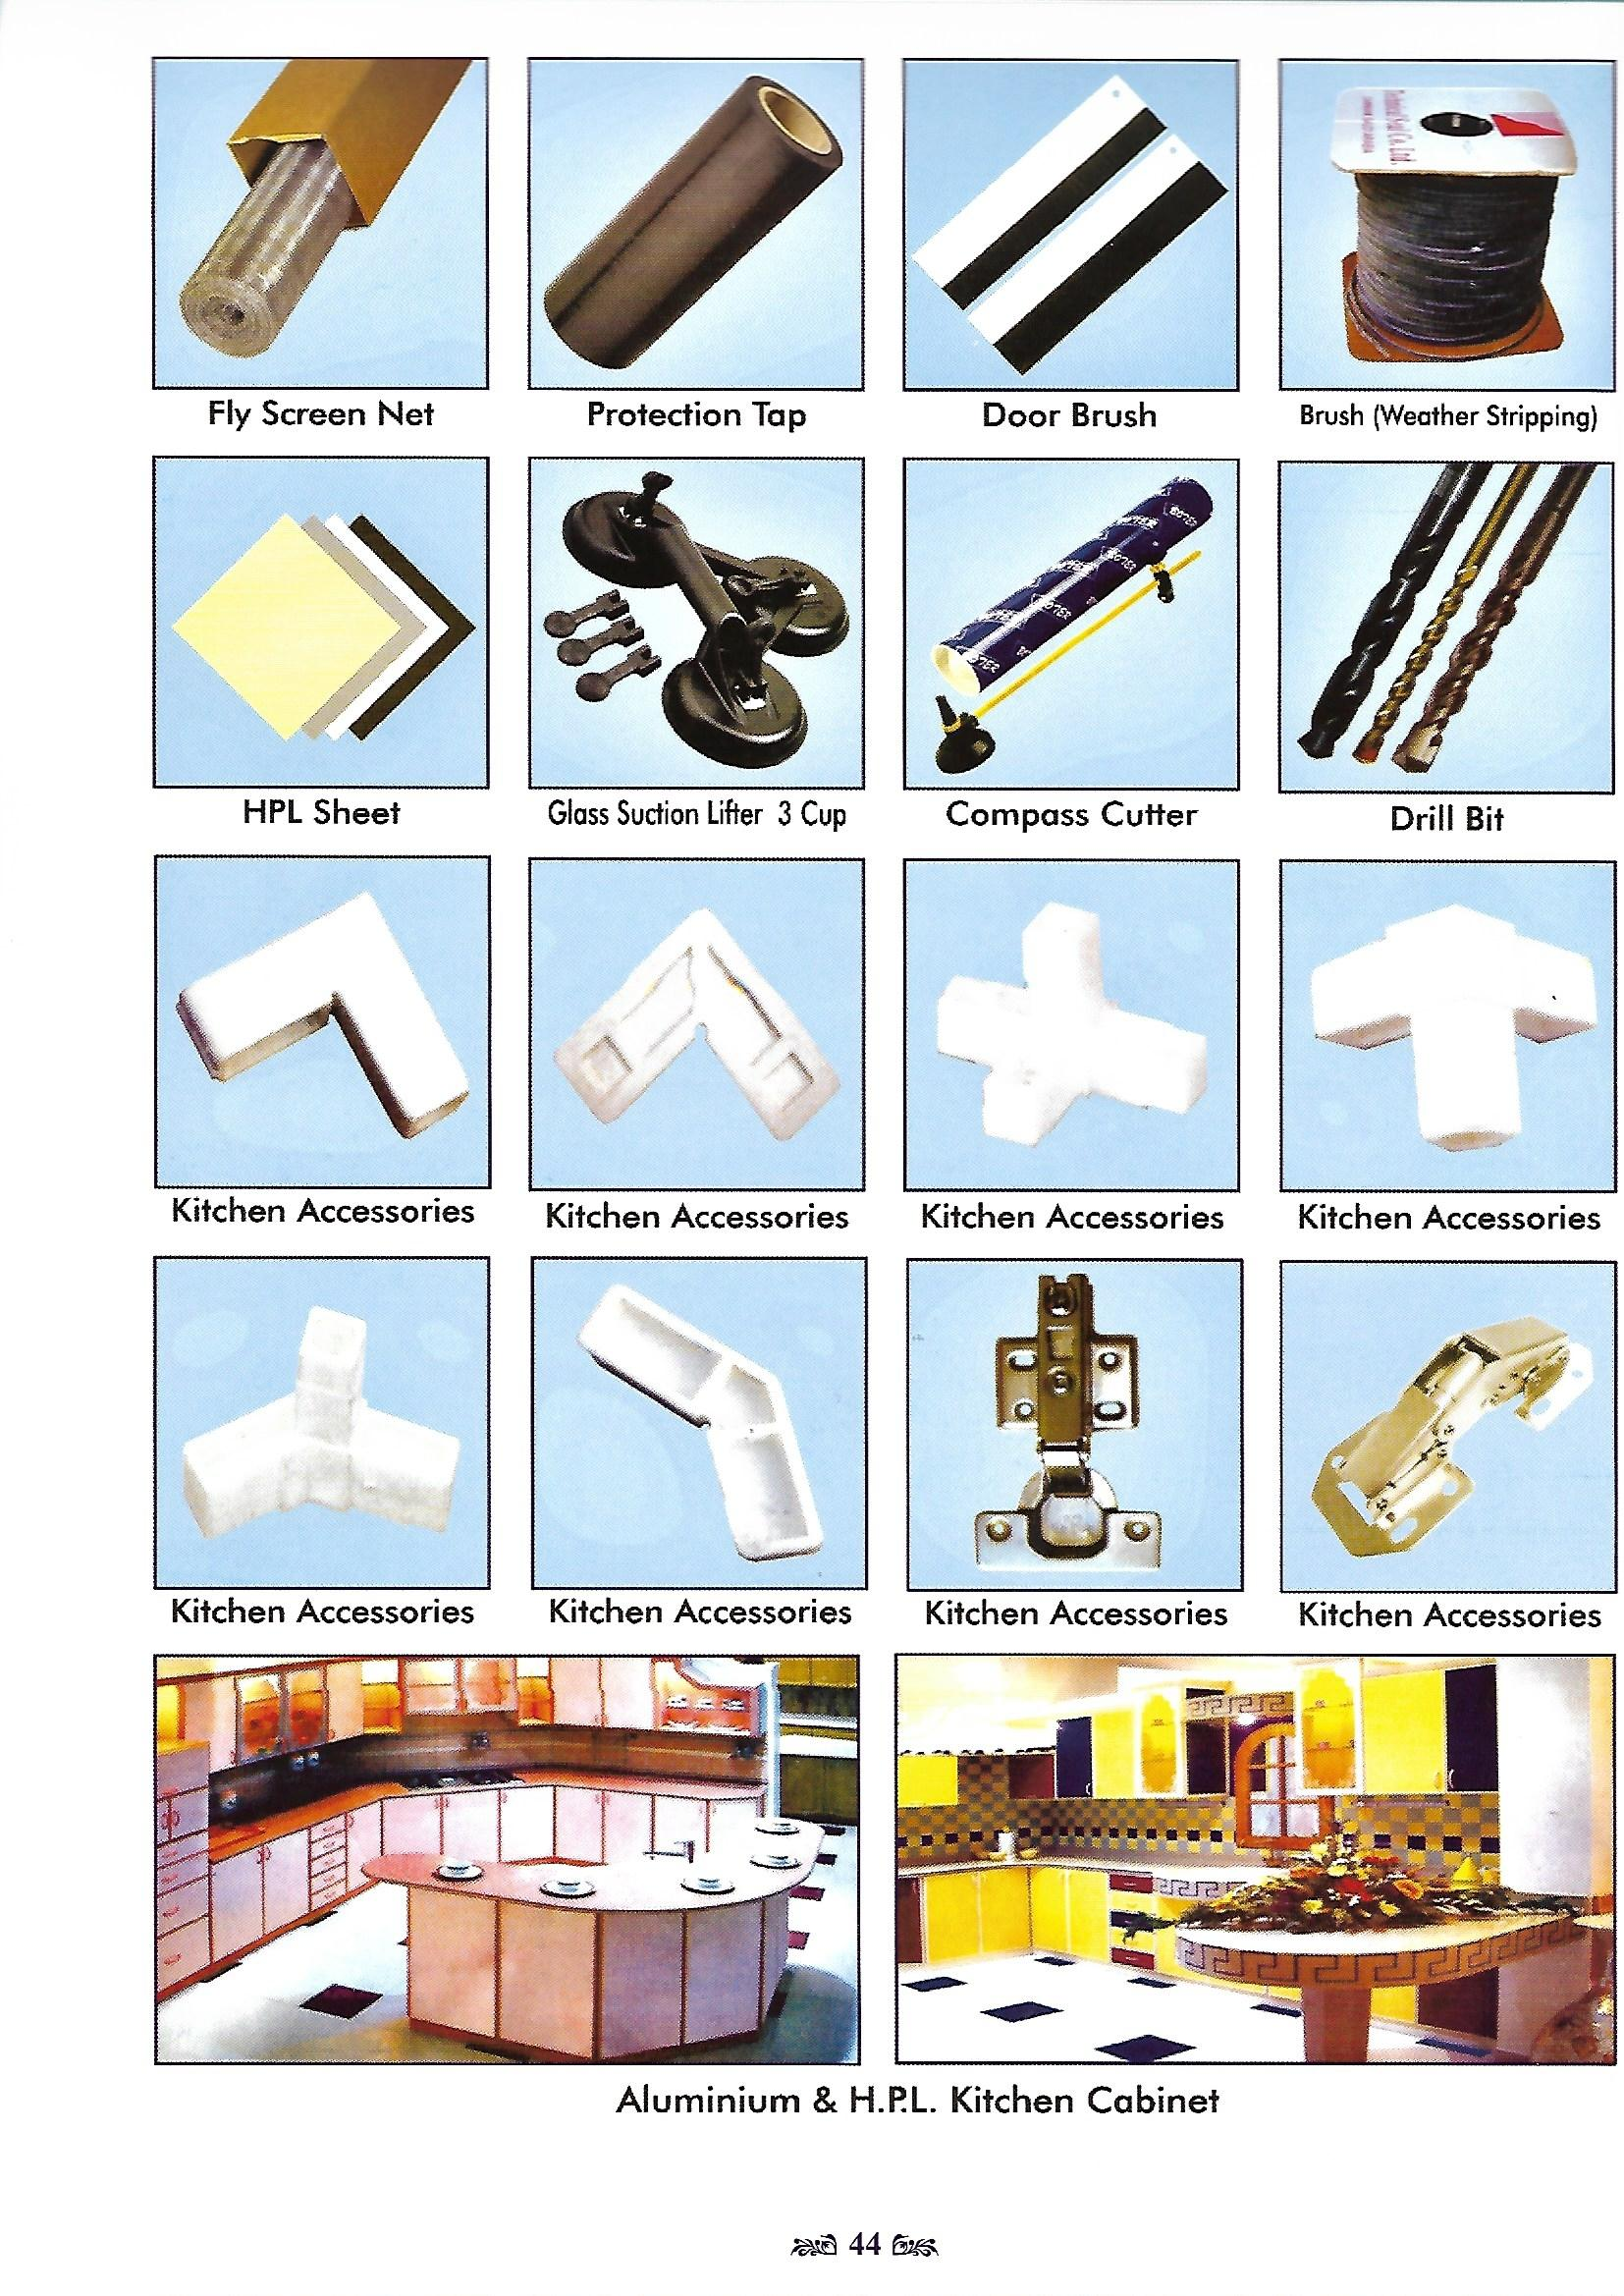 Accessories Page 4